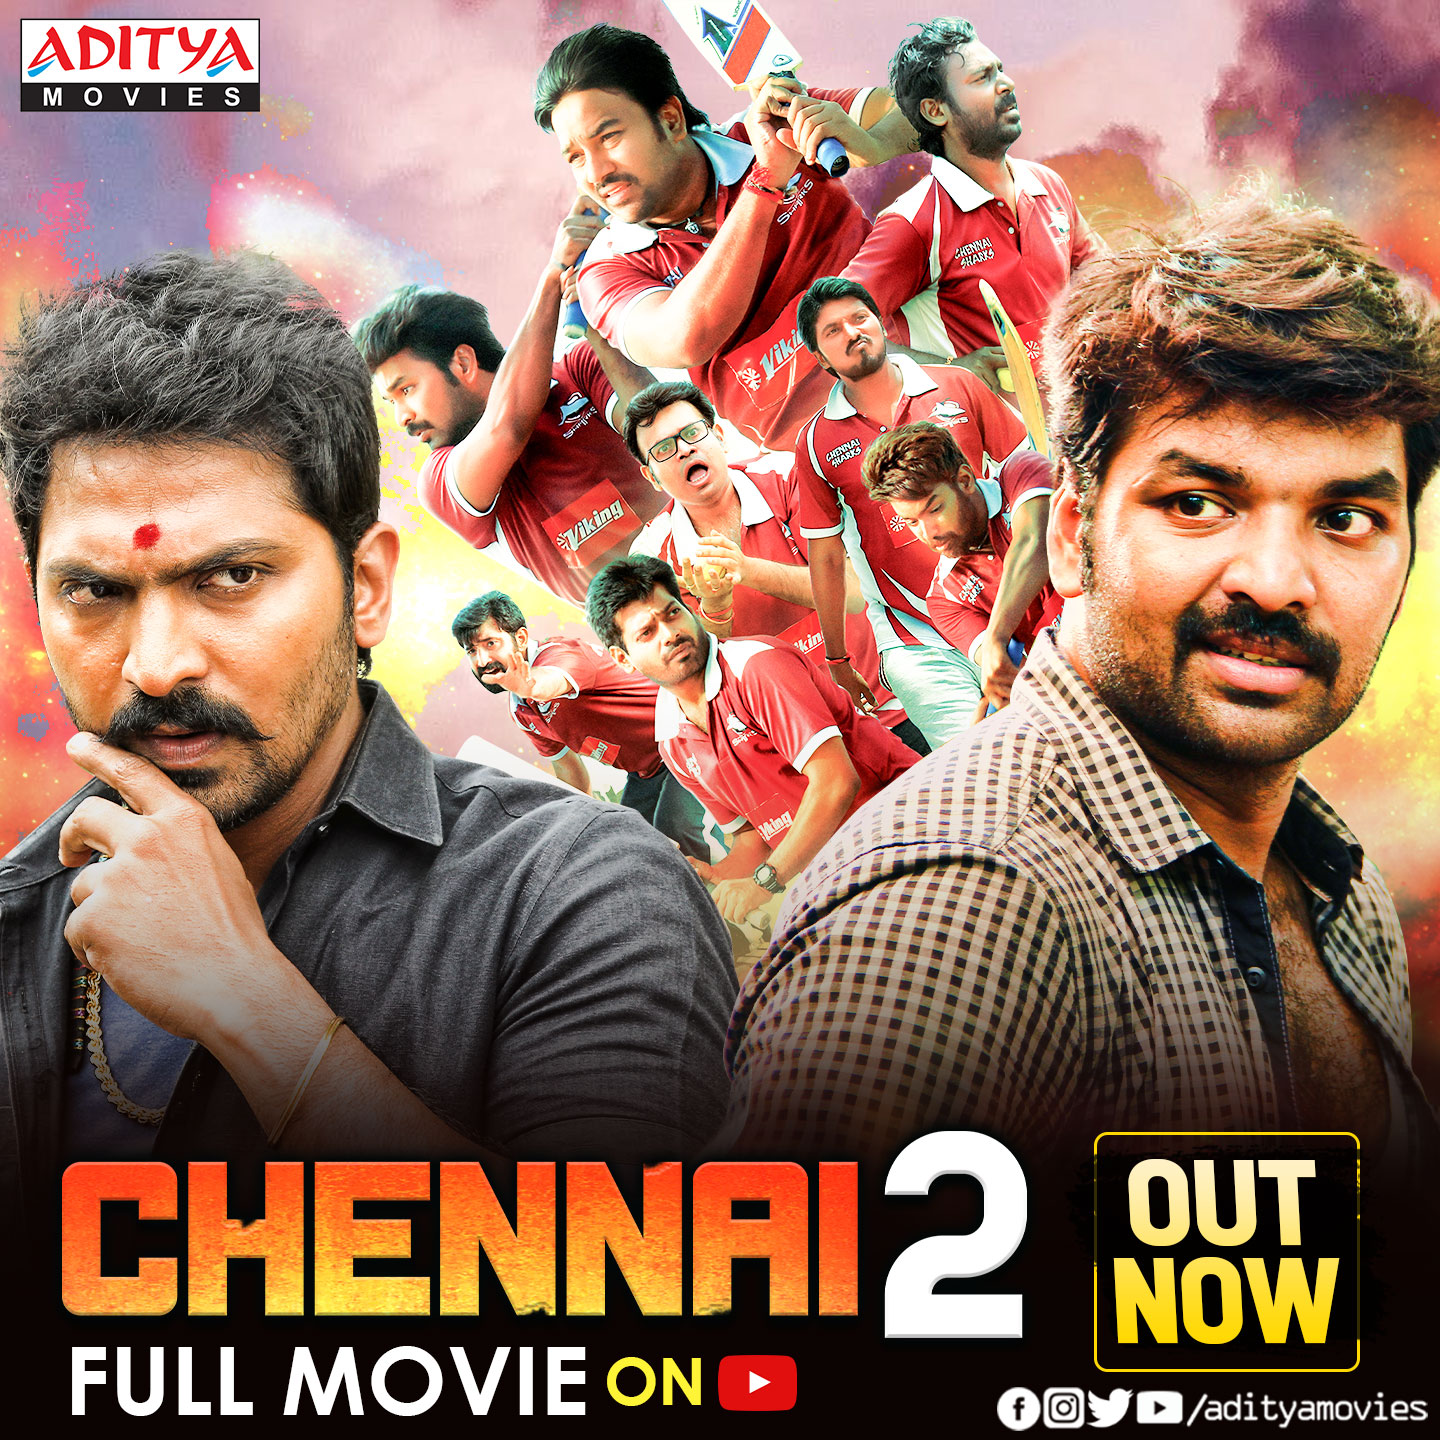 Chennai 2 (Chennai 600028 II) 2021 Hindi Dubbed 480p HDRip 400MB Download